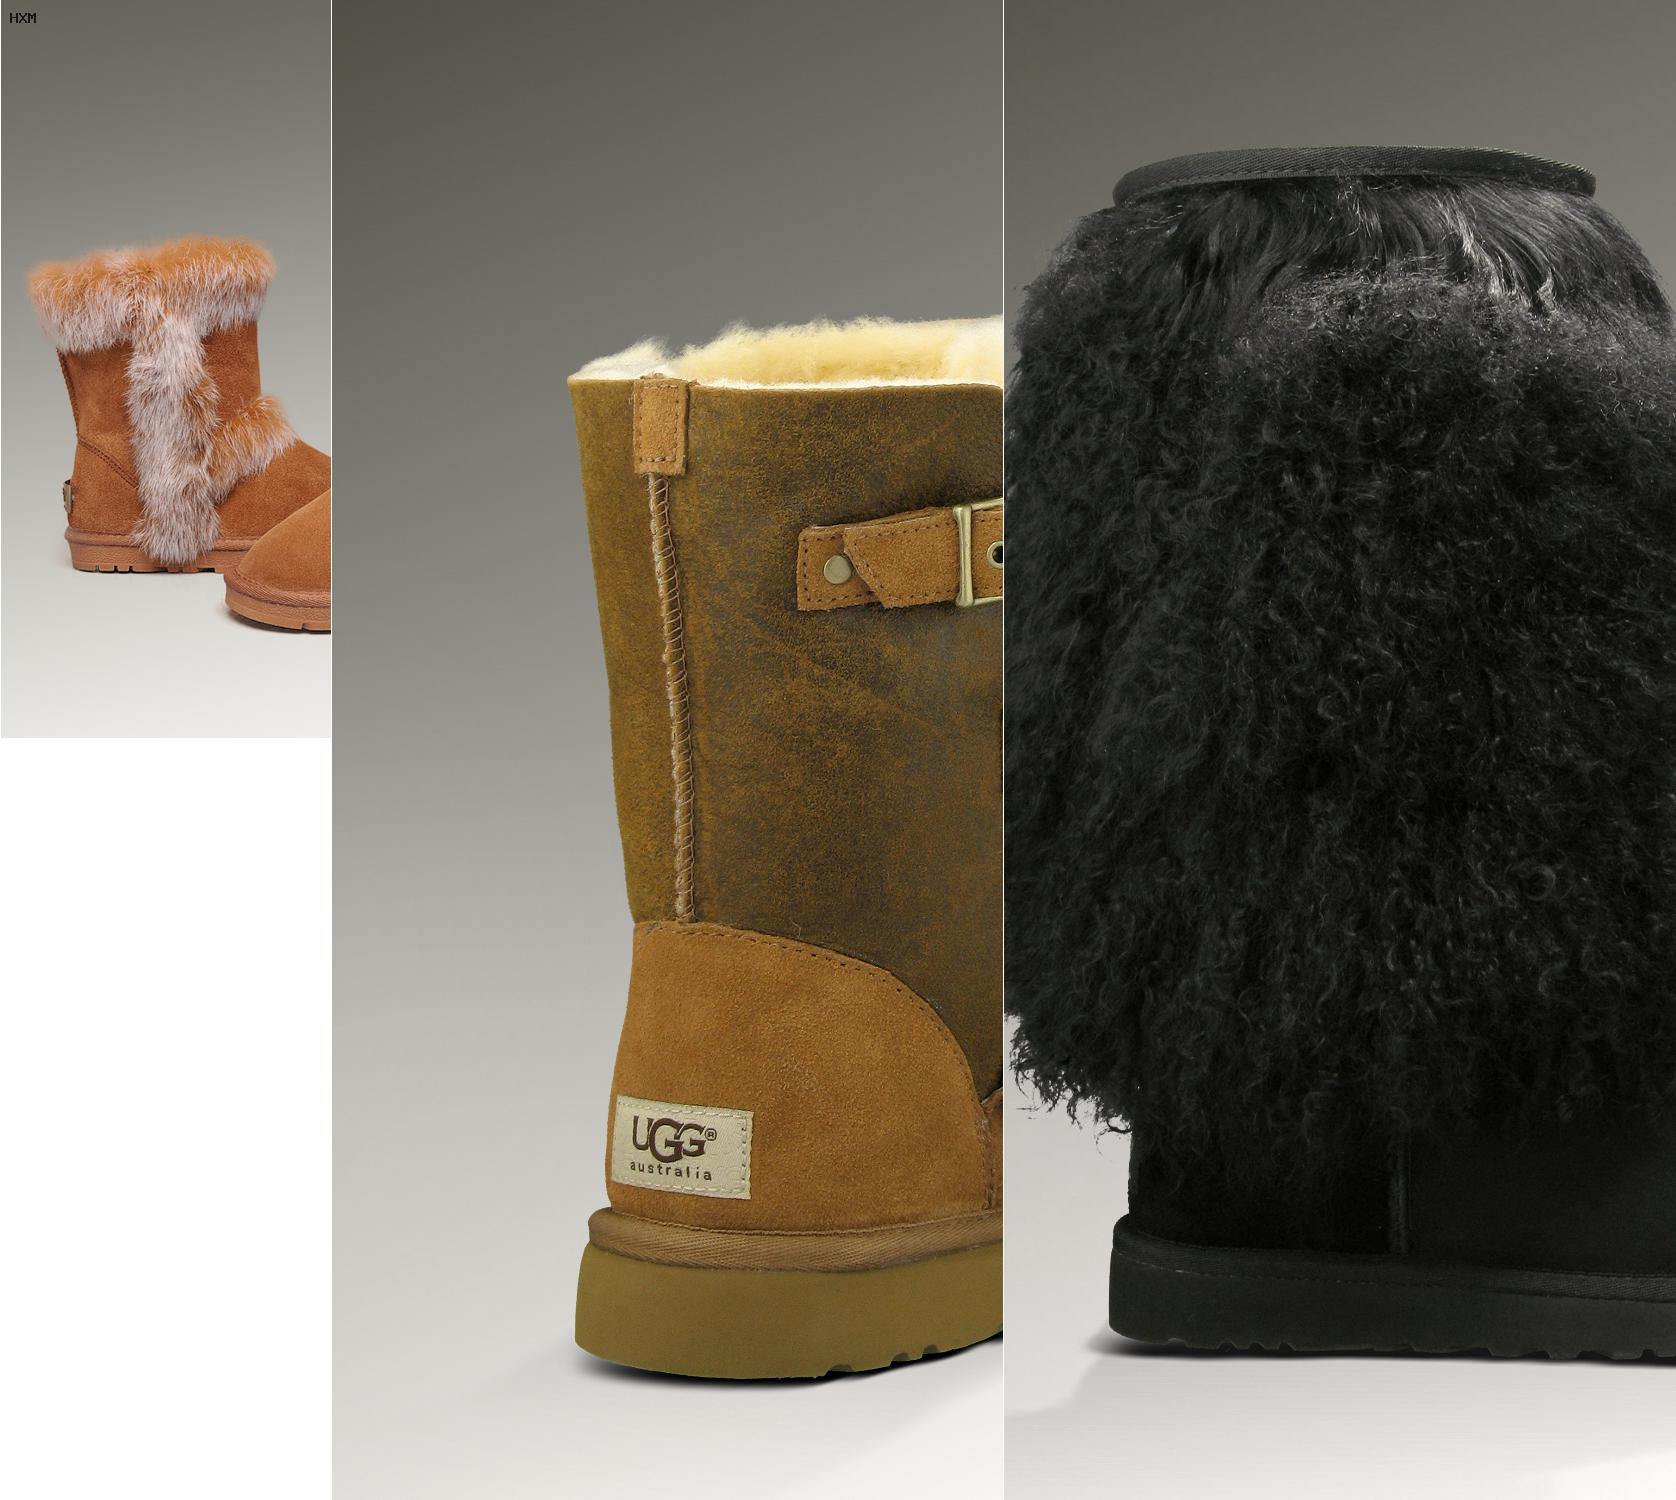 ugg boots new zealand auckland